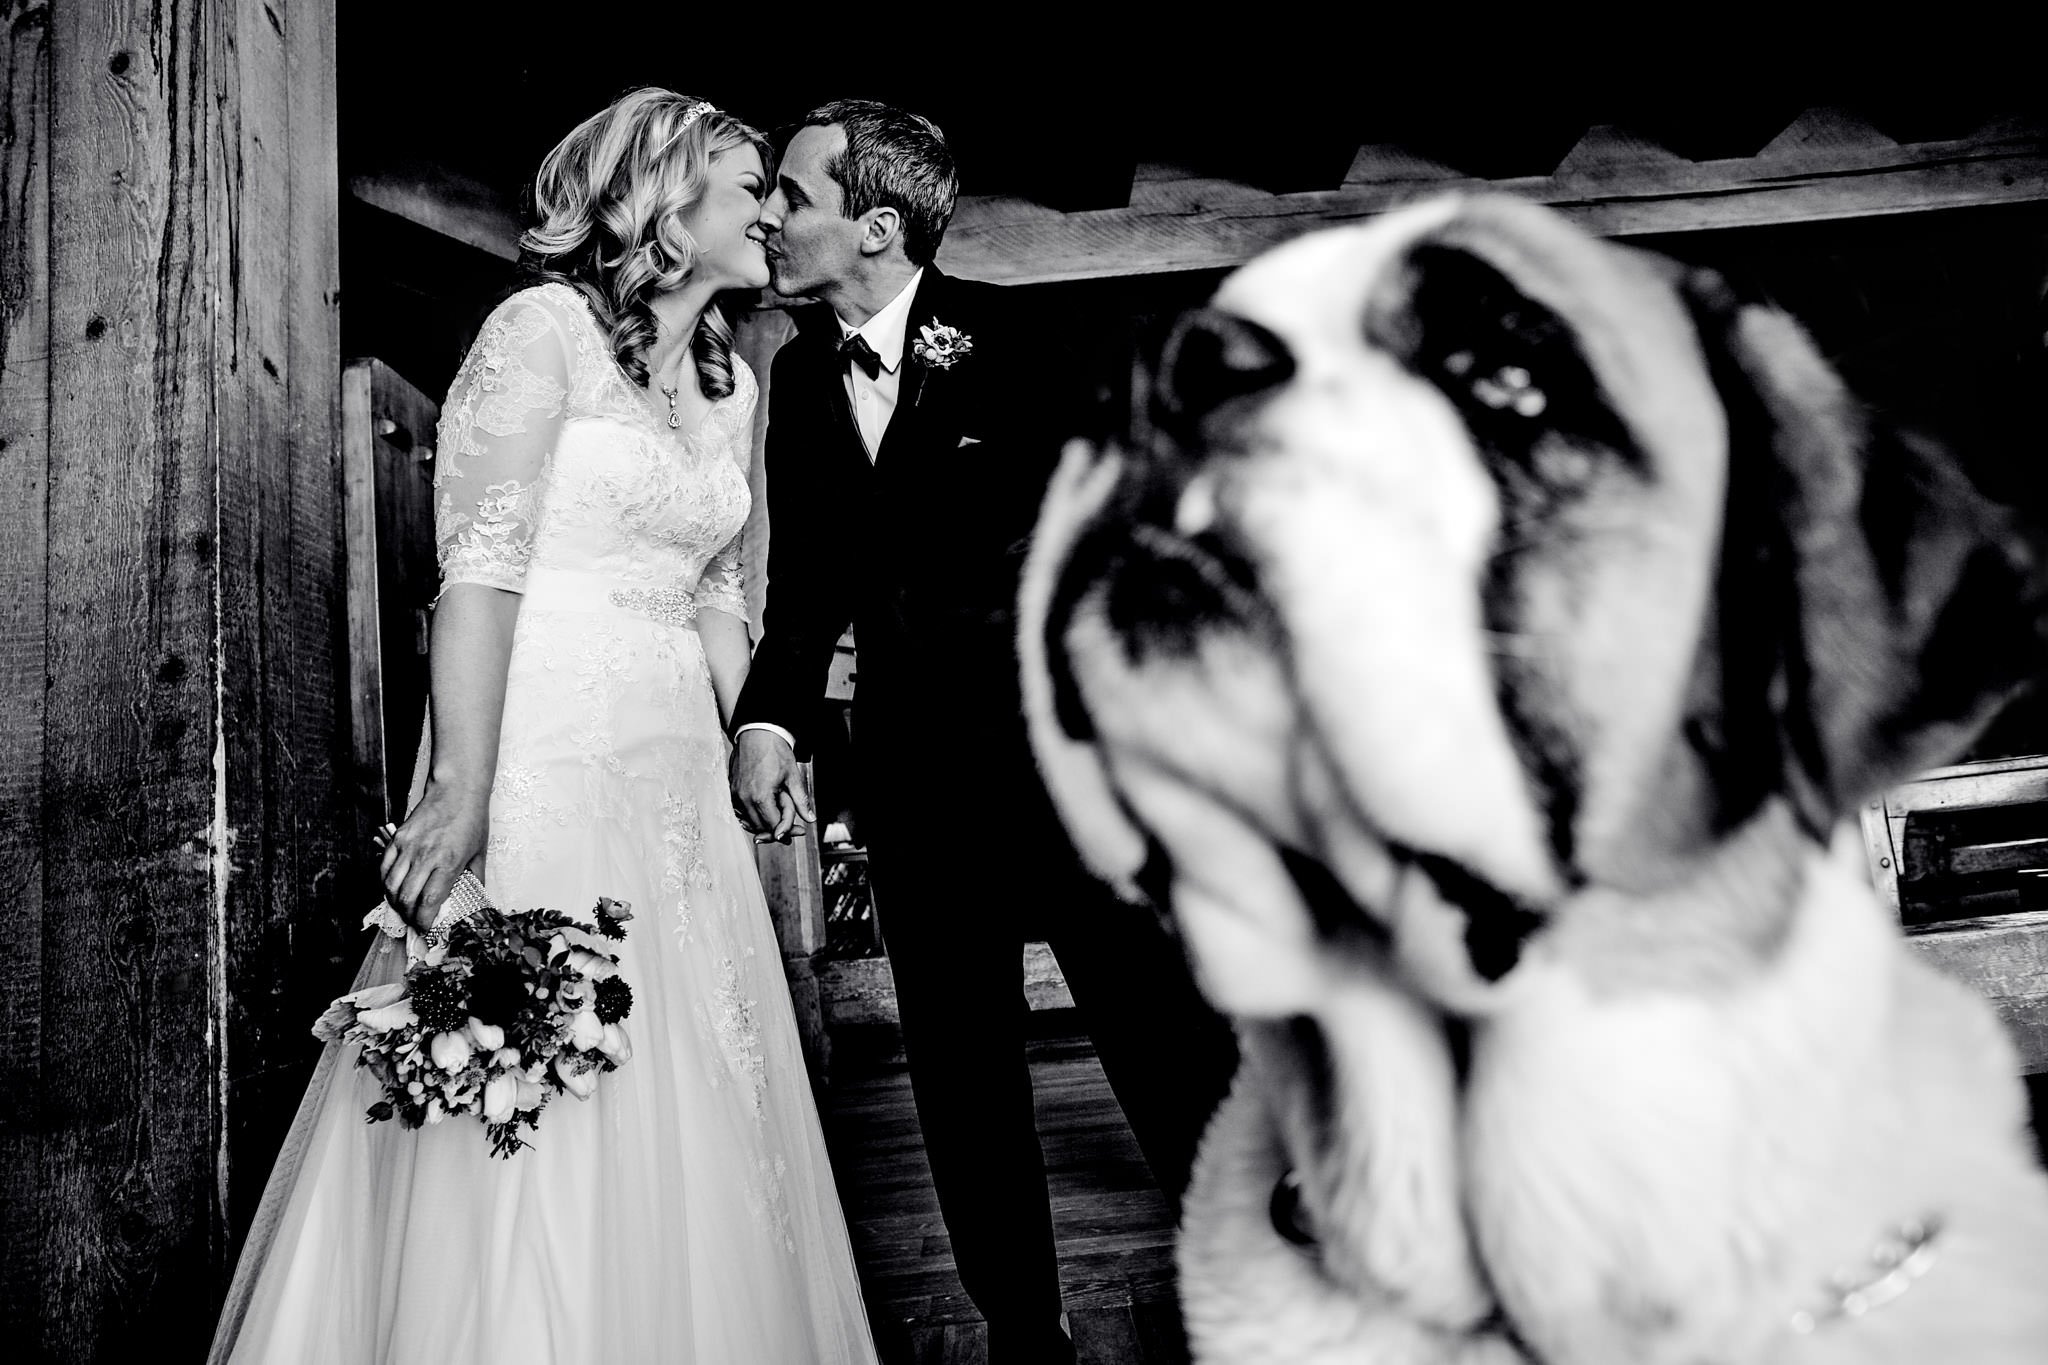 Bride and Groom with big St. Bernard dog at Timberline Lodge